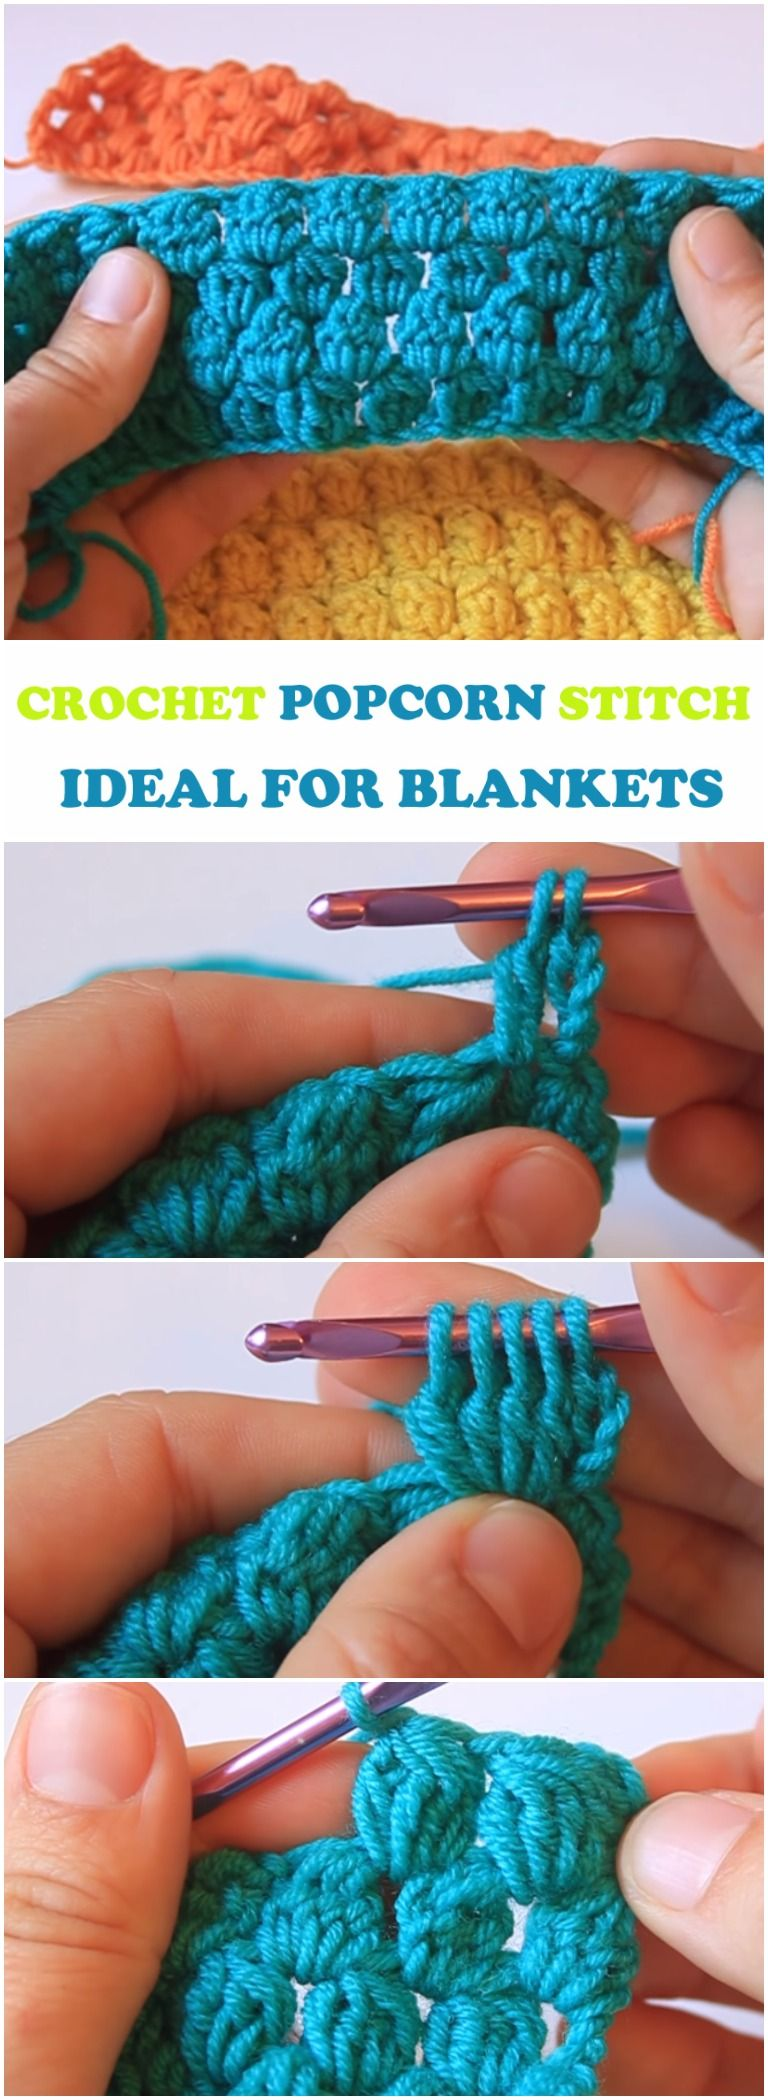 Learn To Crochet Popcorn Stitch Ideal For Blankets | Pinterest ...